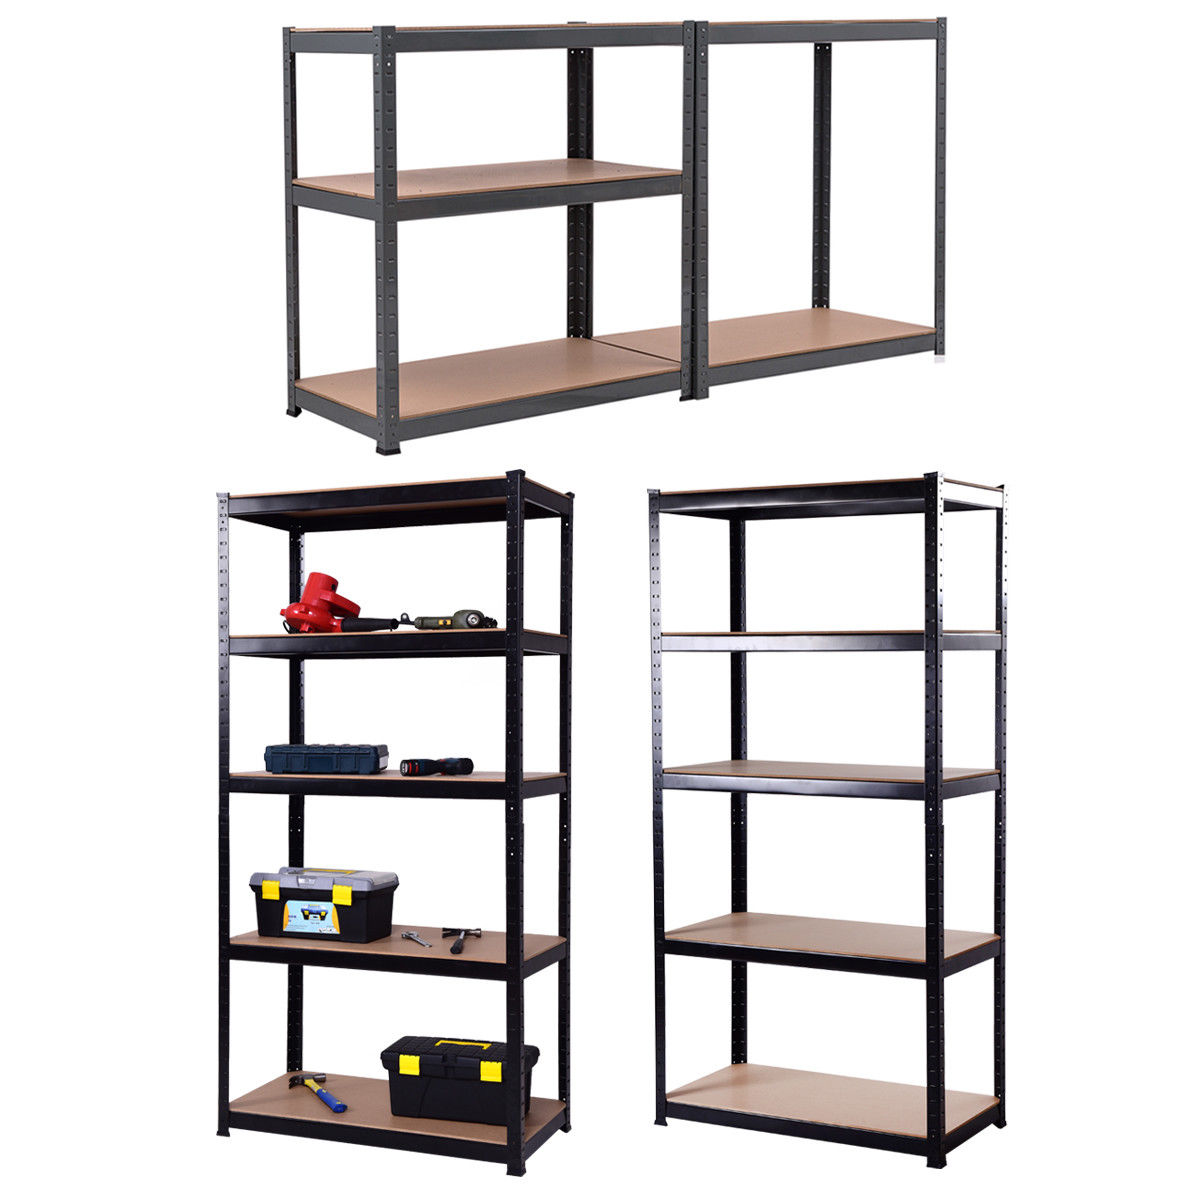 "Gymax 72""x36"" Heavy Duty 5 Level Garage Shelf Storage Adjustable Weight Up to 2750Lbs"